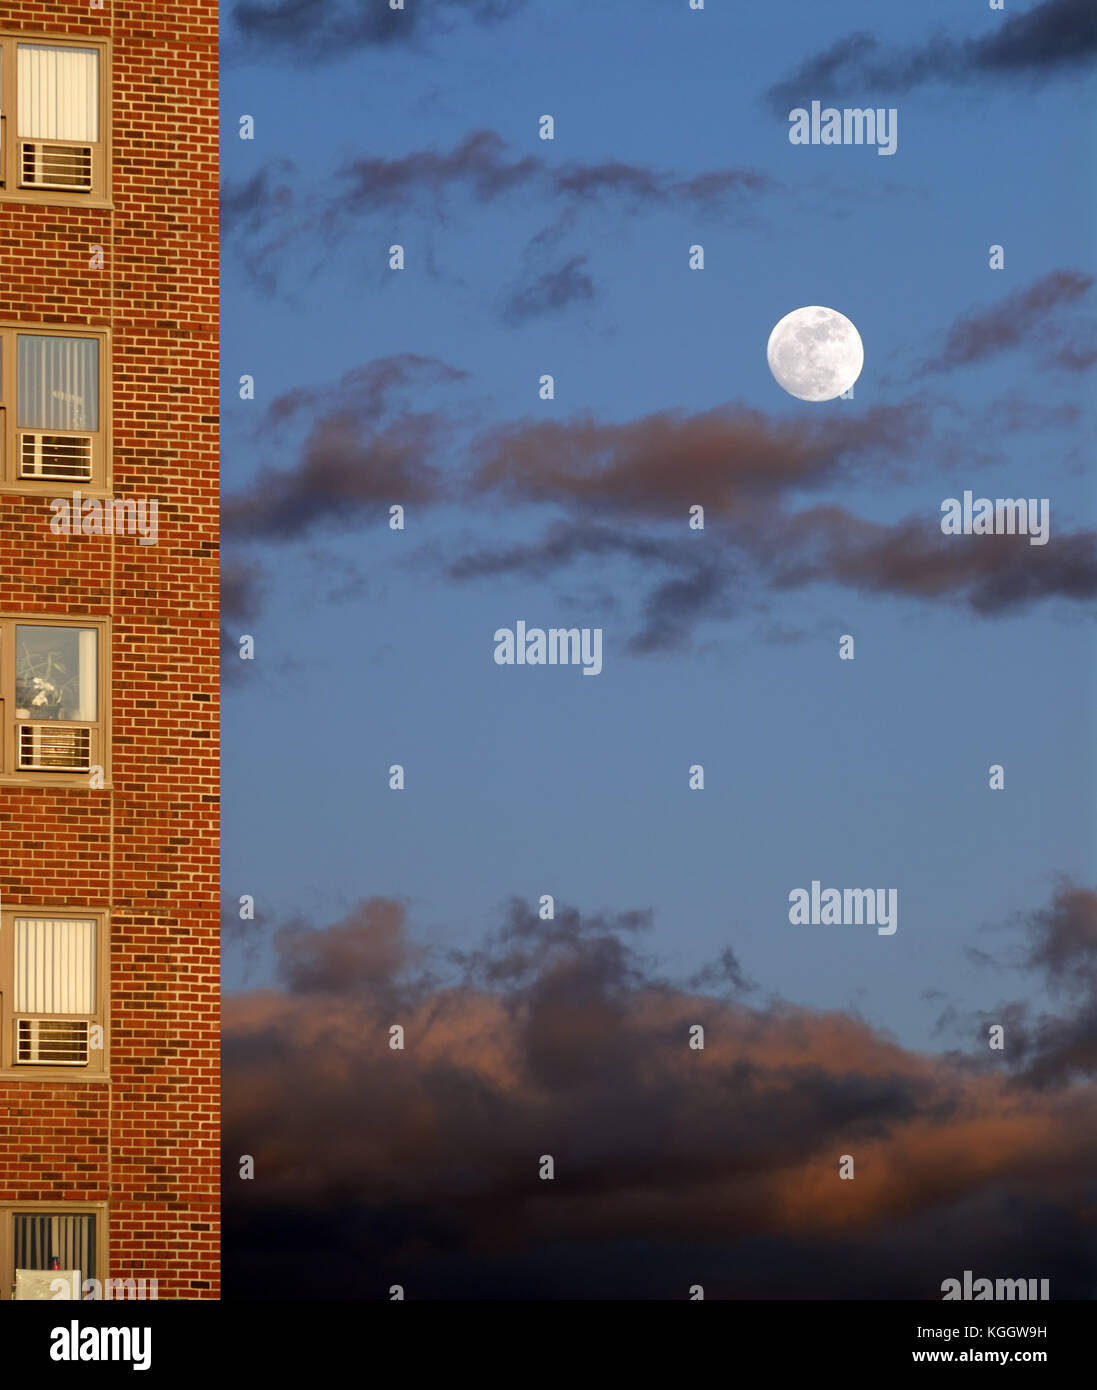 Full moon rising by the public housing project. Abstract background for low income family dreams, aspirations… Stock Photo